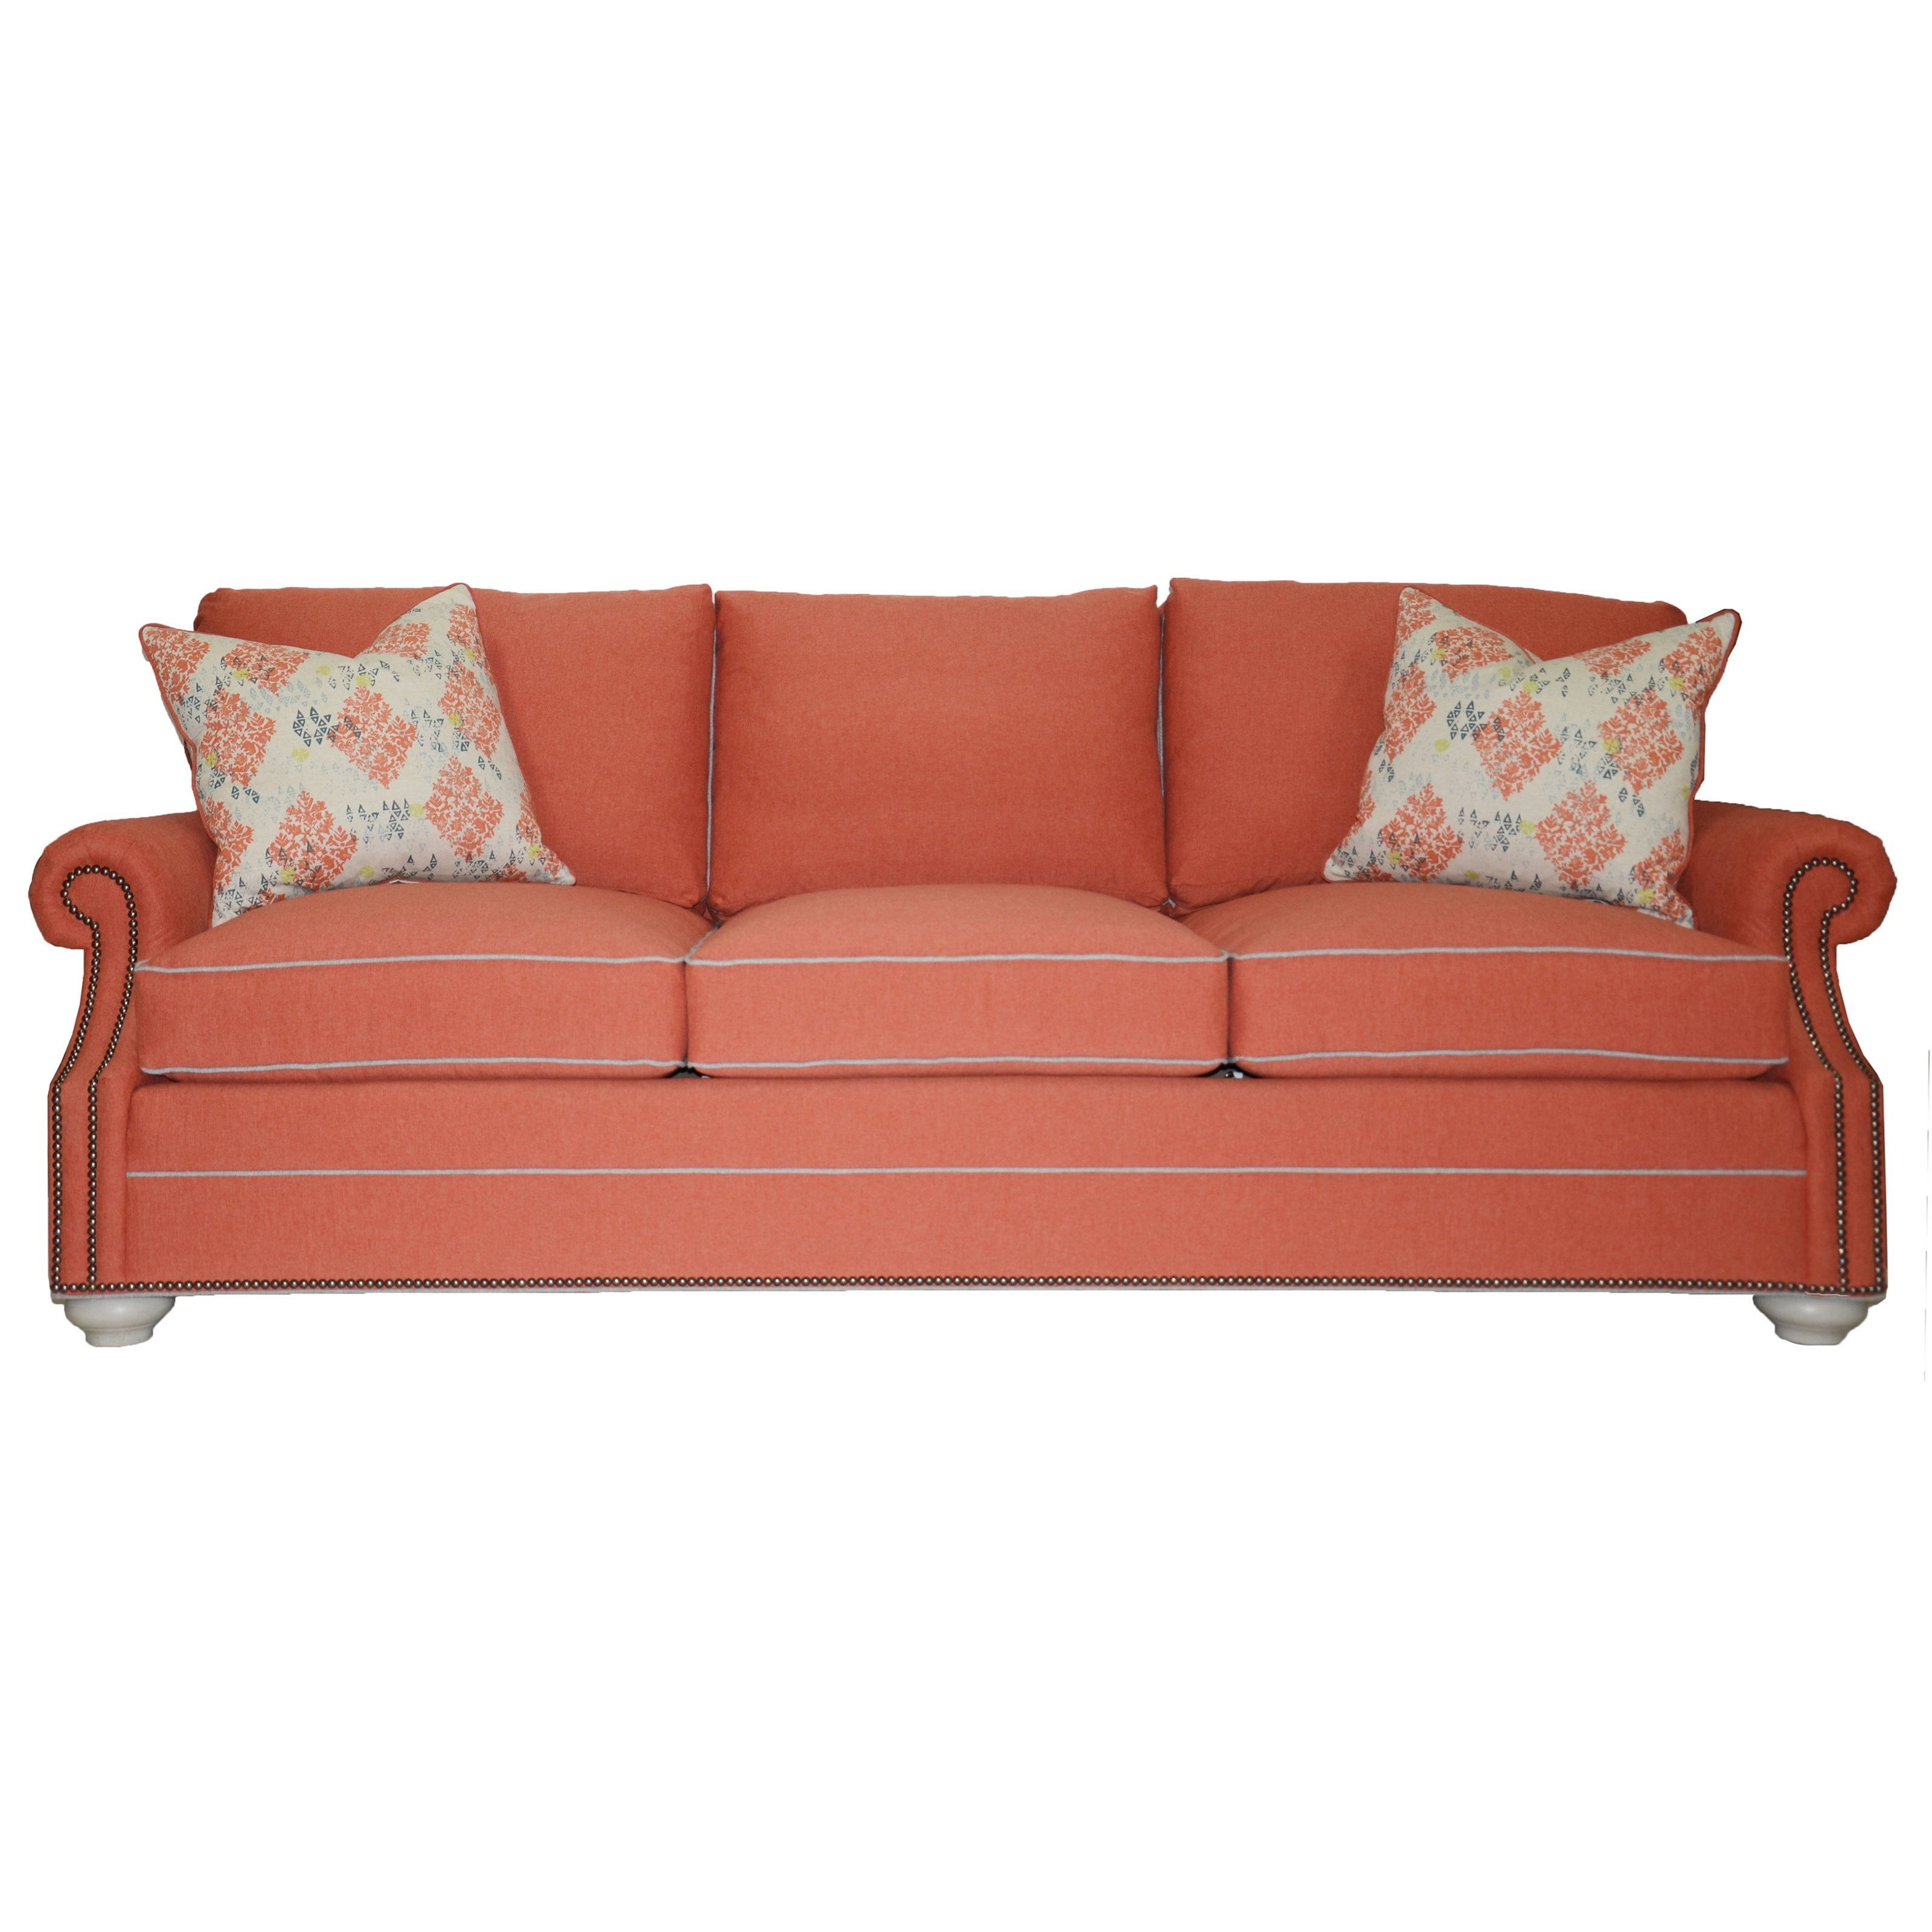 Vanguard Leather Vanguard Furniture American Bungalow 648 S Gutherly Sofa